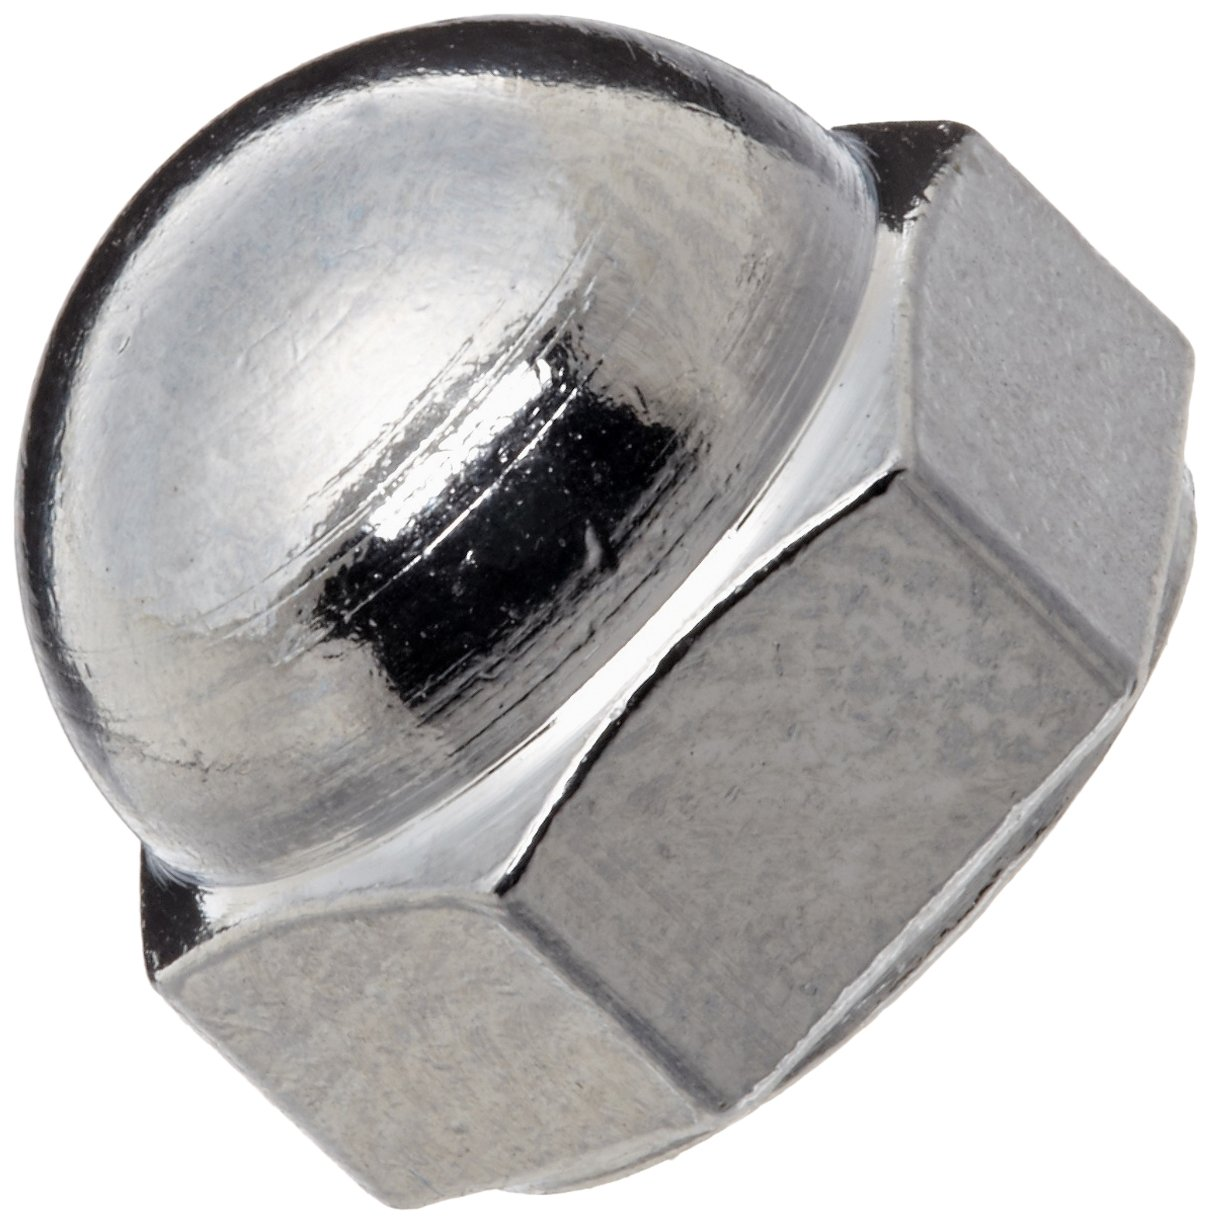 Chrome-Plated Brass Acorn Nut, Extra Low Crown, USA Made, 1/4''-20 Thread Size, 7/16'' Width Across Flats, 3/8'' Height, 7/32'' Minimum Thread Depth (Pack of 10)